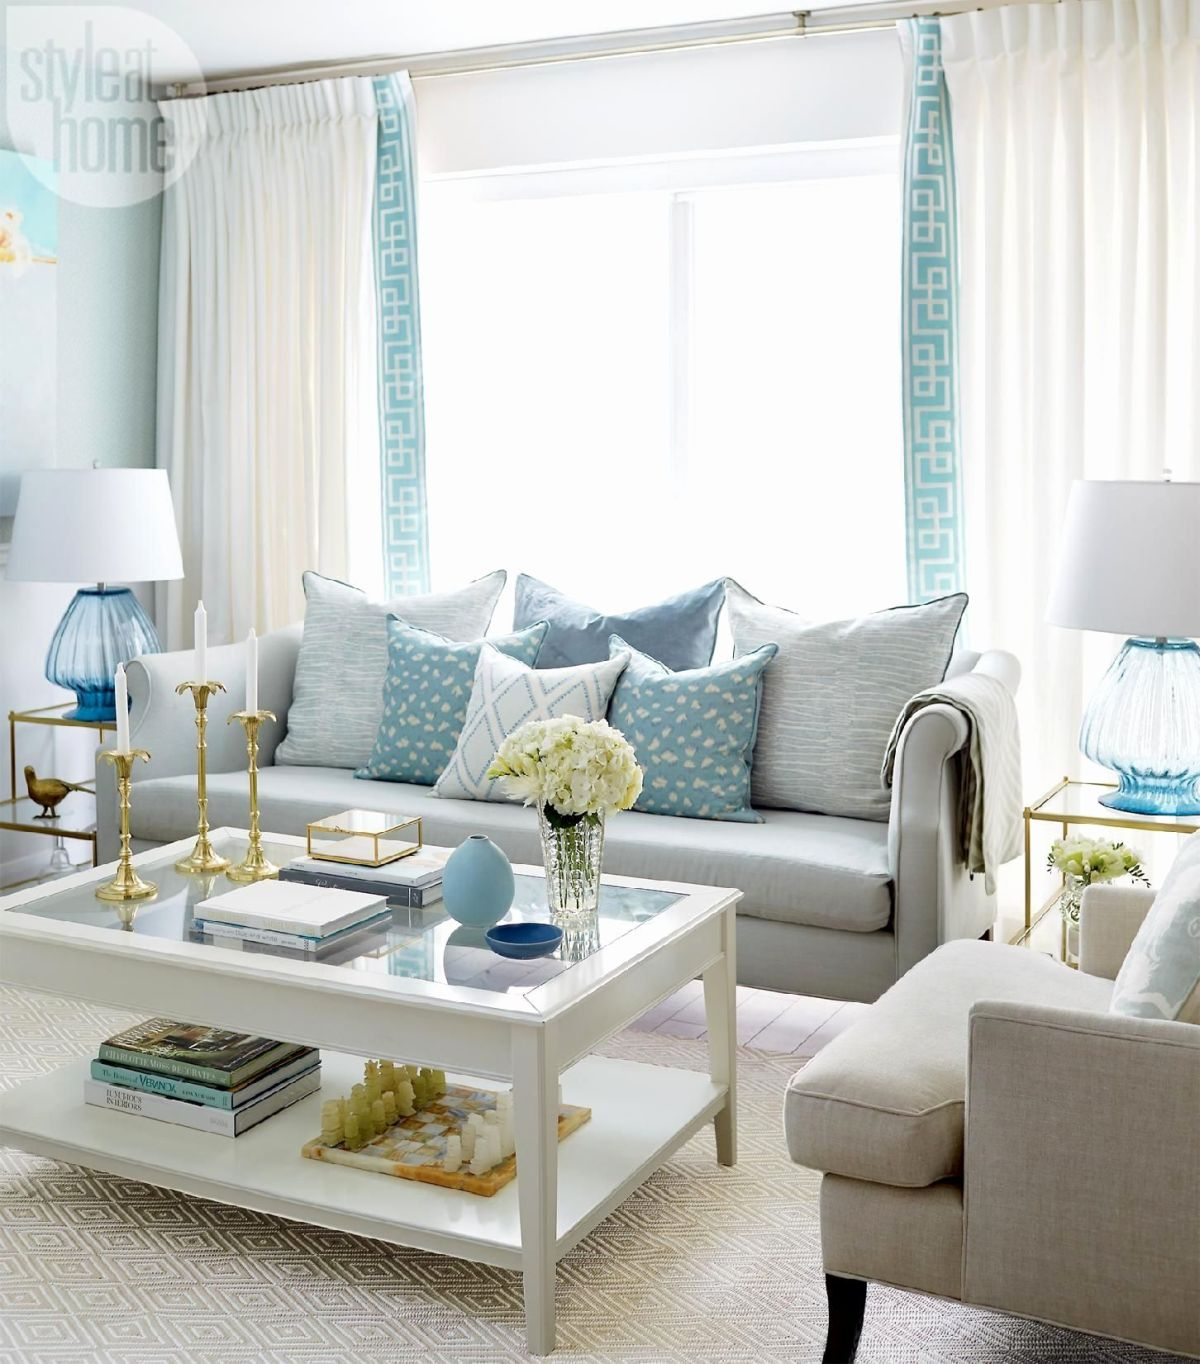 decorating ideas living room blue light fixtures low ceiling 29 rooms made for relaxing view in gallery